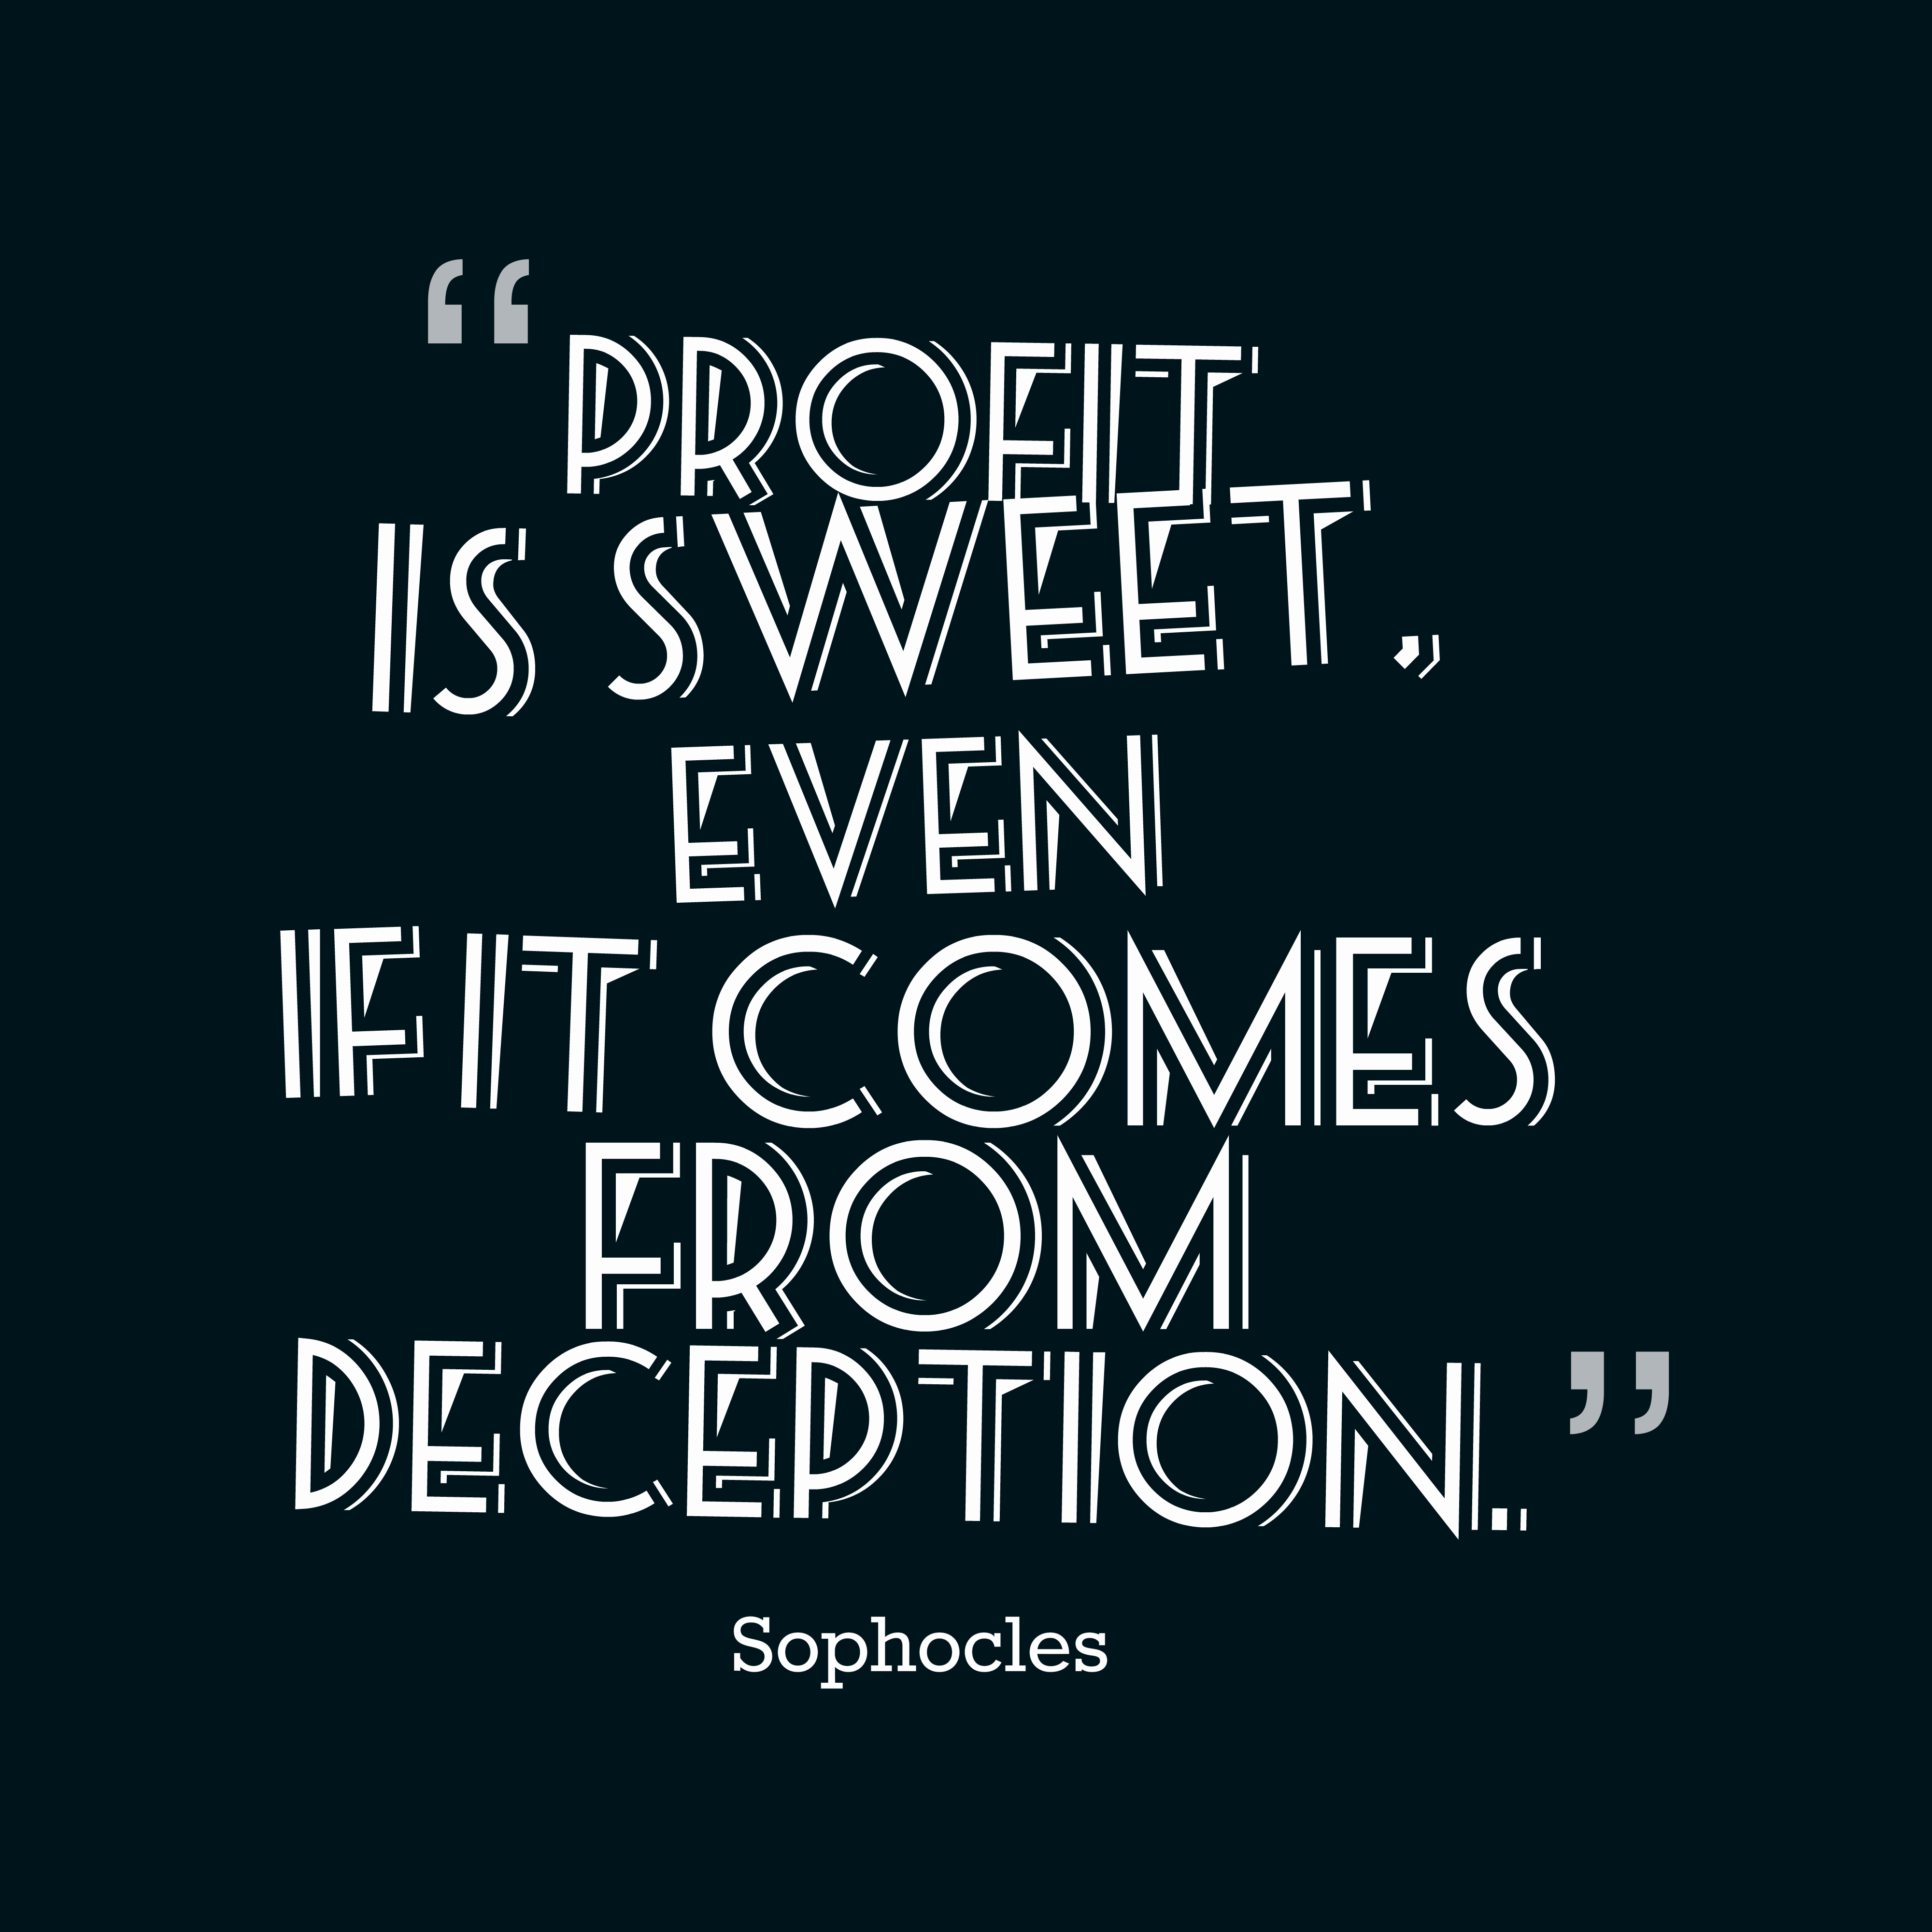 Picture Sophocles quote about profit. | QuotesCover.com